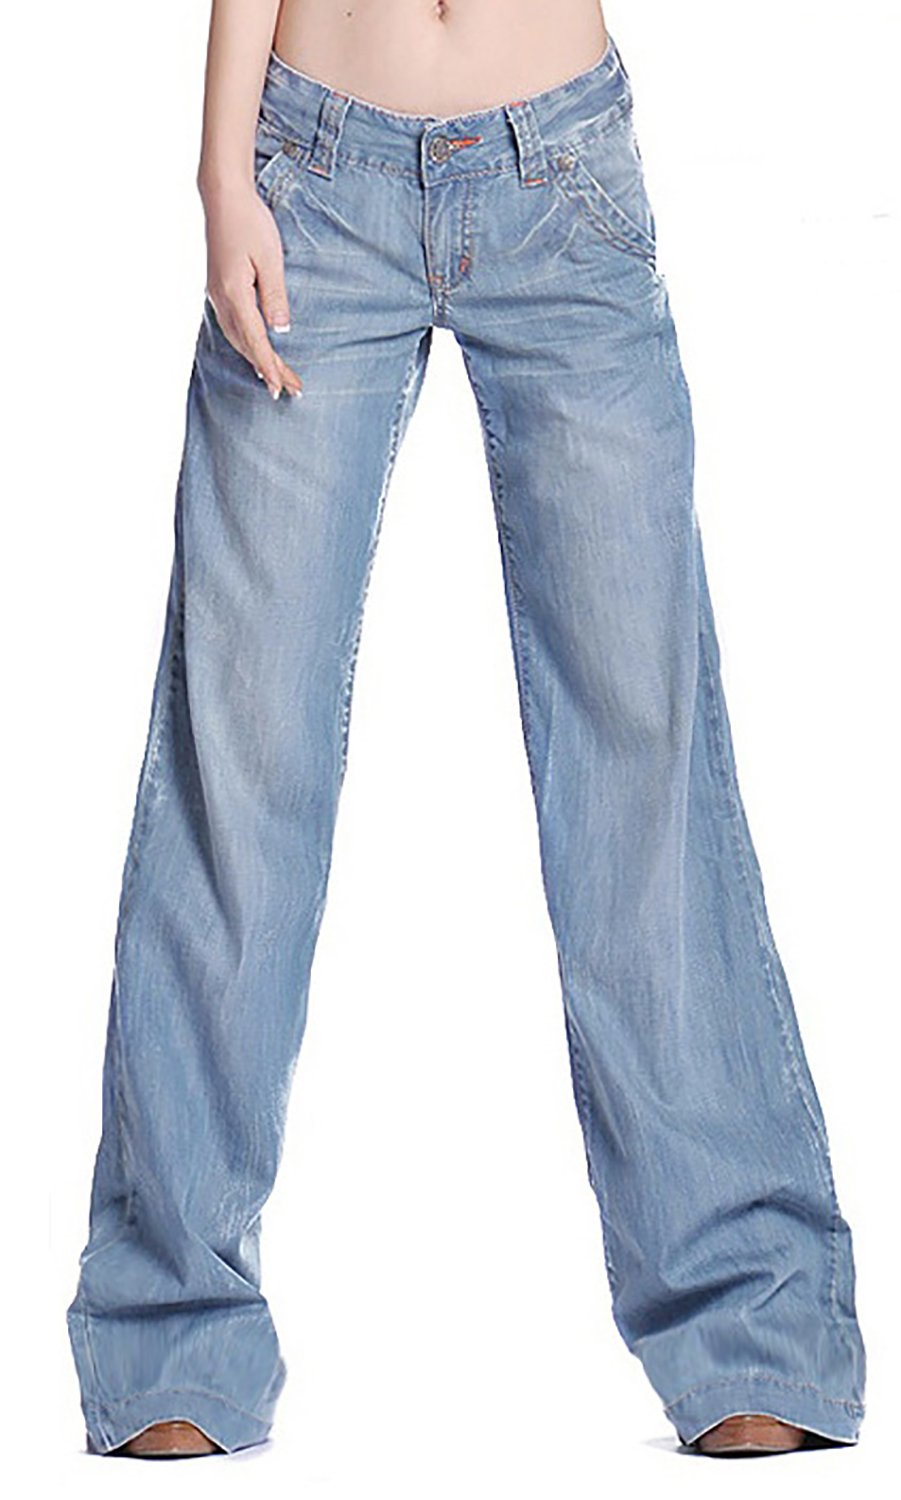 Women's Fashion Light Blue Loose Curvy Bootcut High Waist Straight Fit Jeans 12 by GARMOY (Image #3)